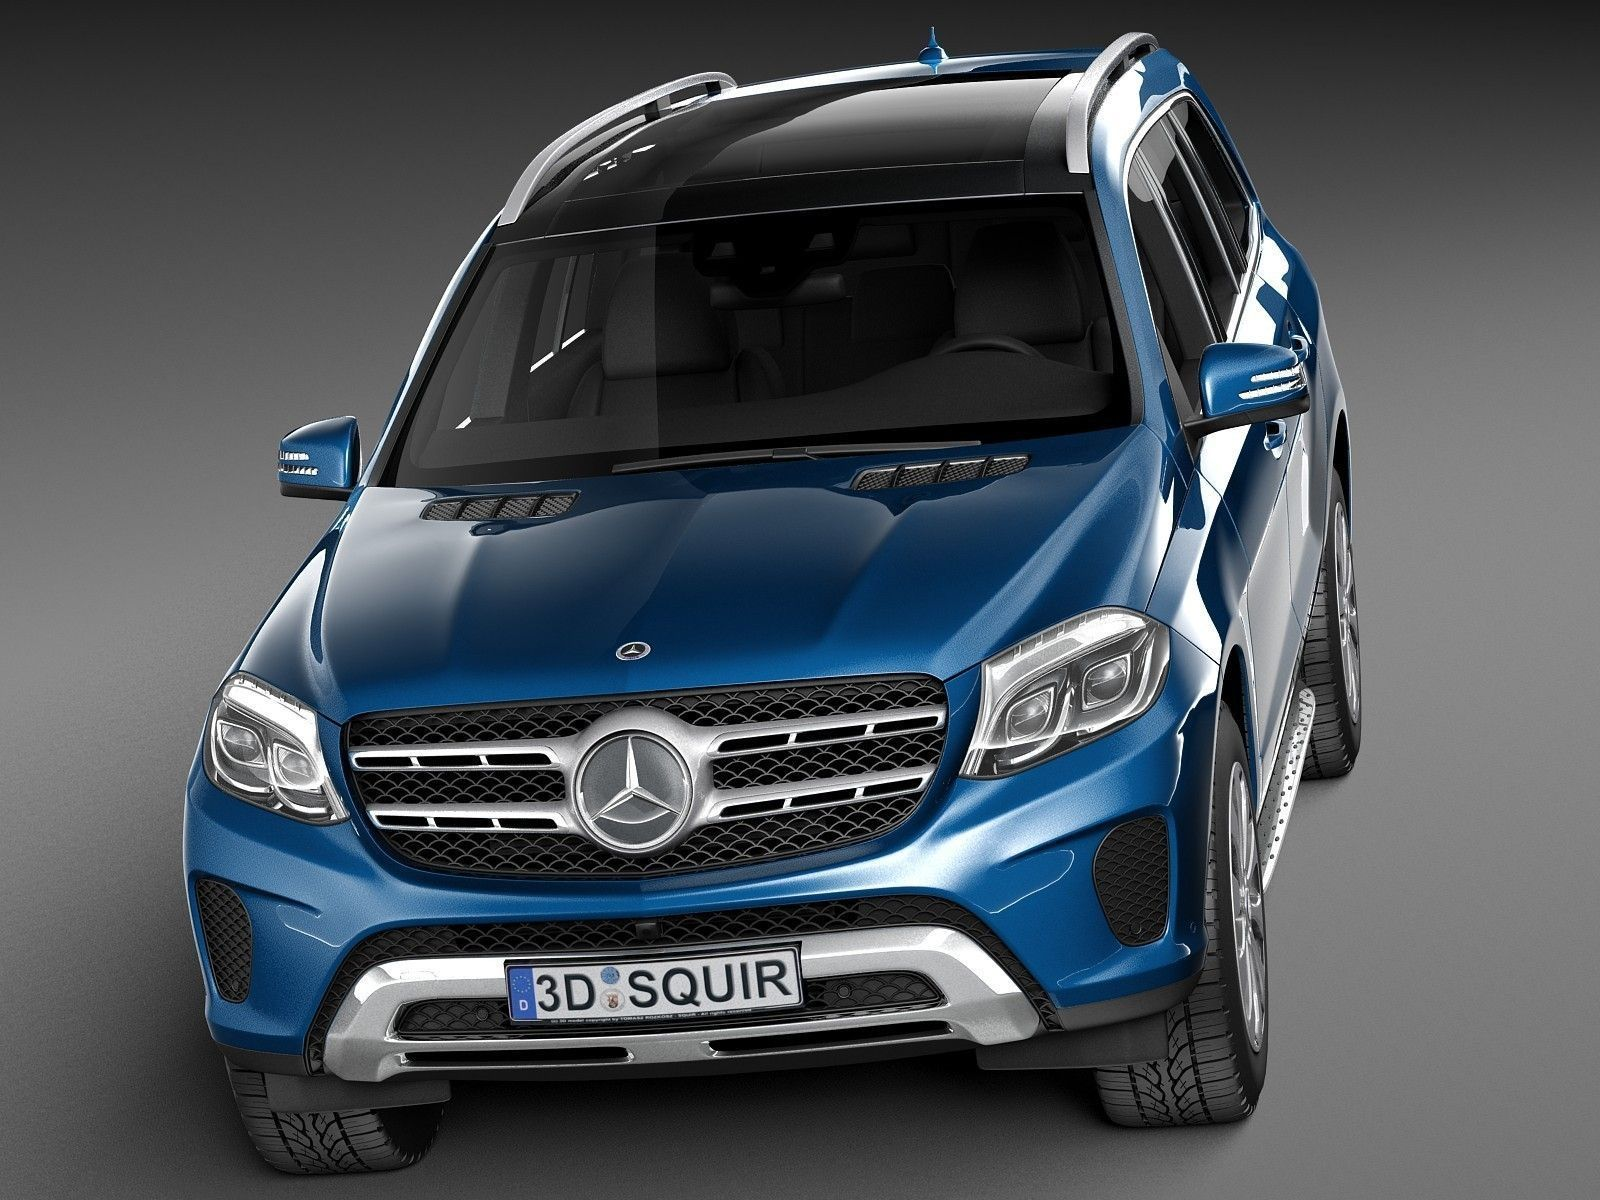 Mercedes benz gls 2017 3d model max obj 3ds fbx c4d for Mercedes benz suv models